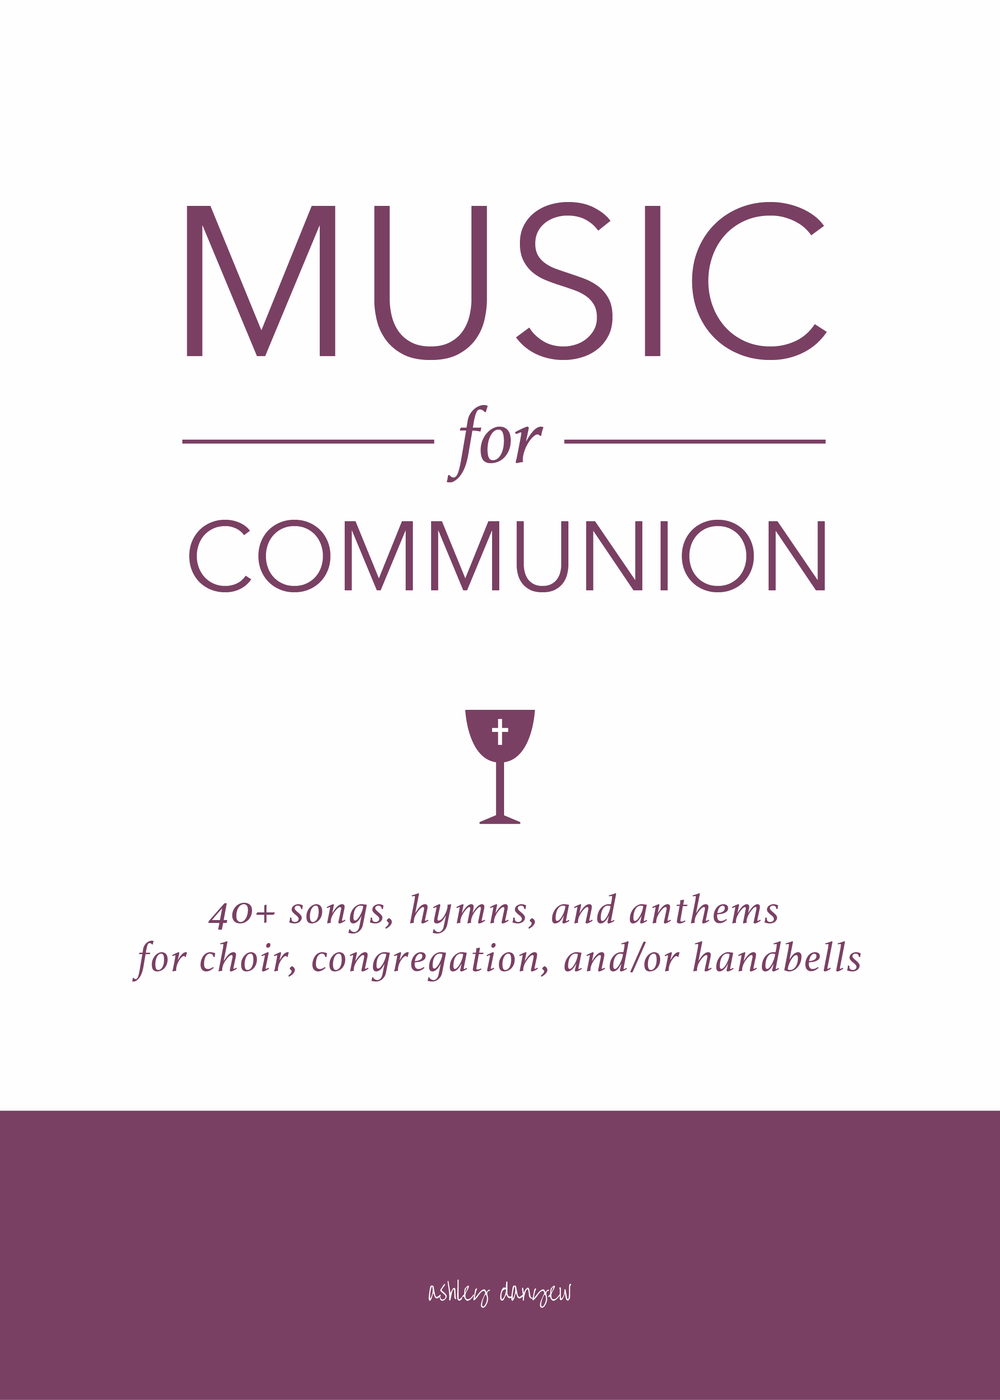 Music-for-Communion-01.png